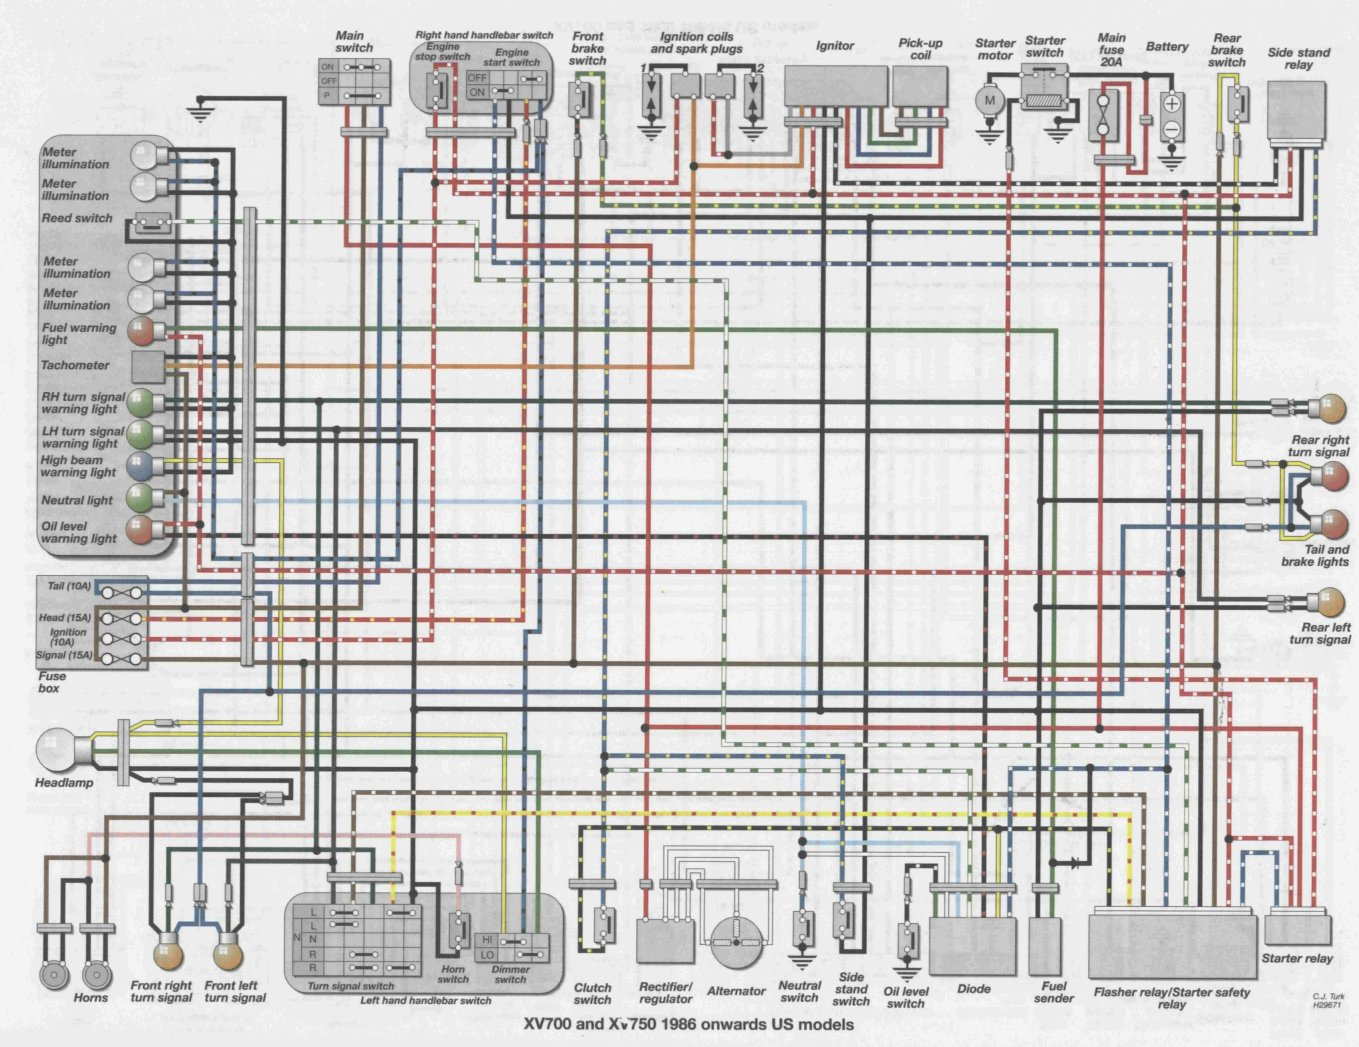 86 Vt 1100 Wiring Diagram Explore On The Net Honda I Have An 750 Virago When You First Start It Up Vt1100 Review